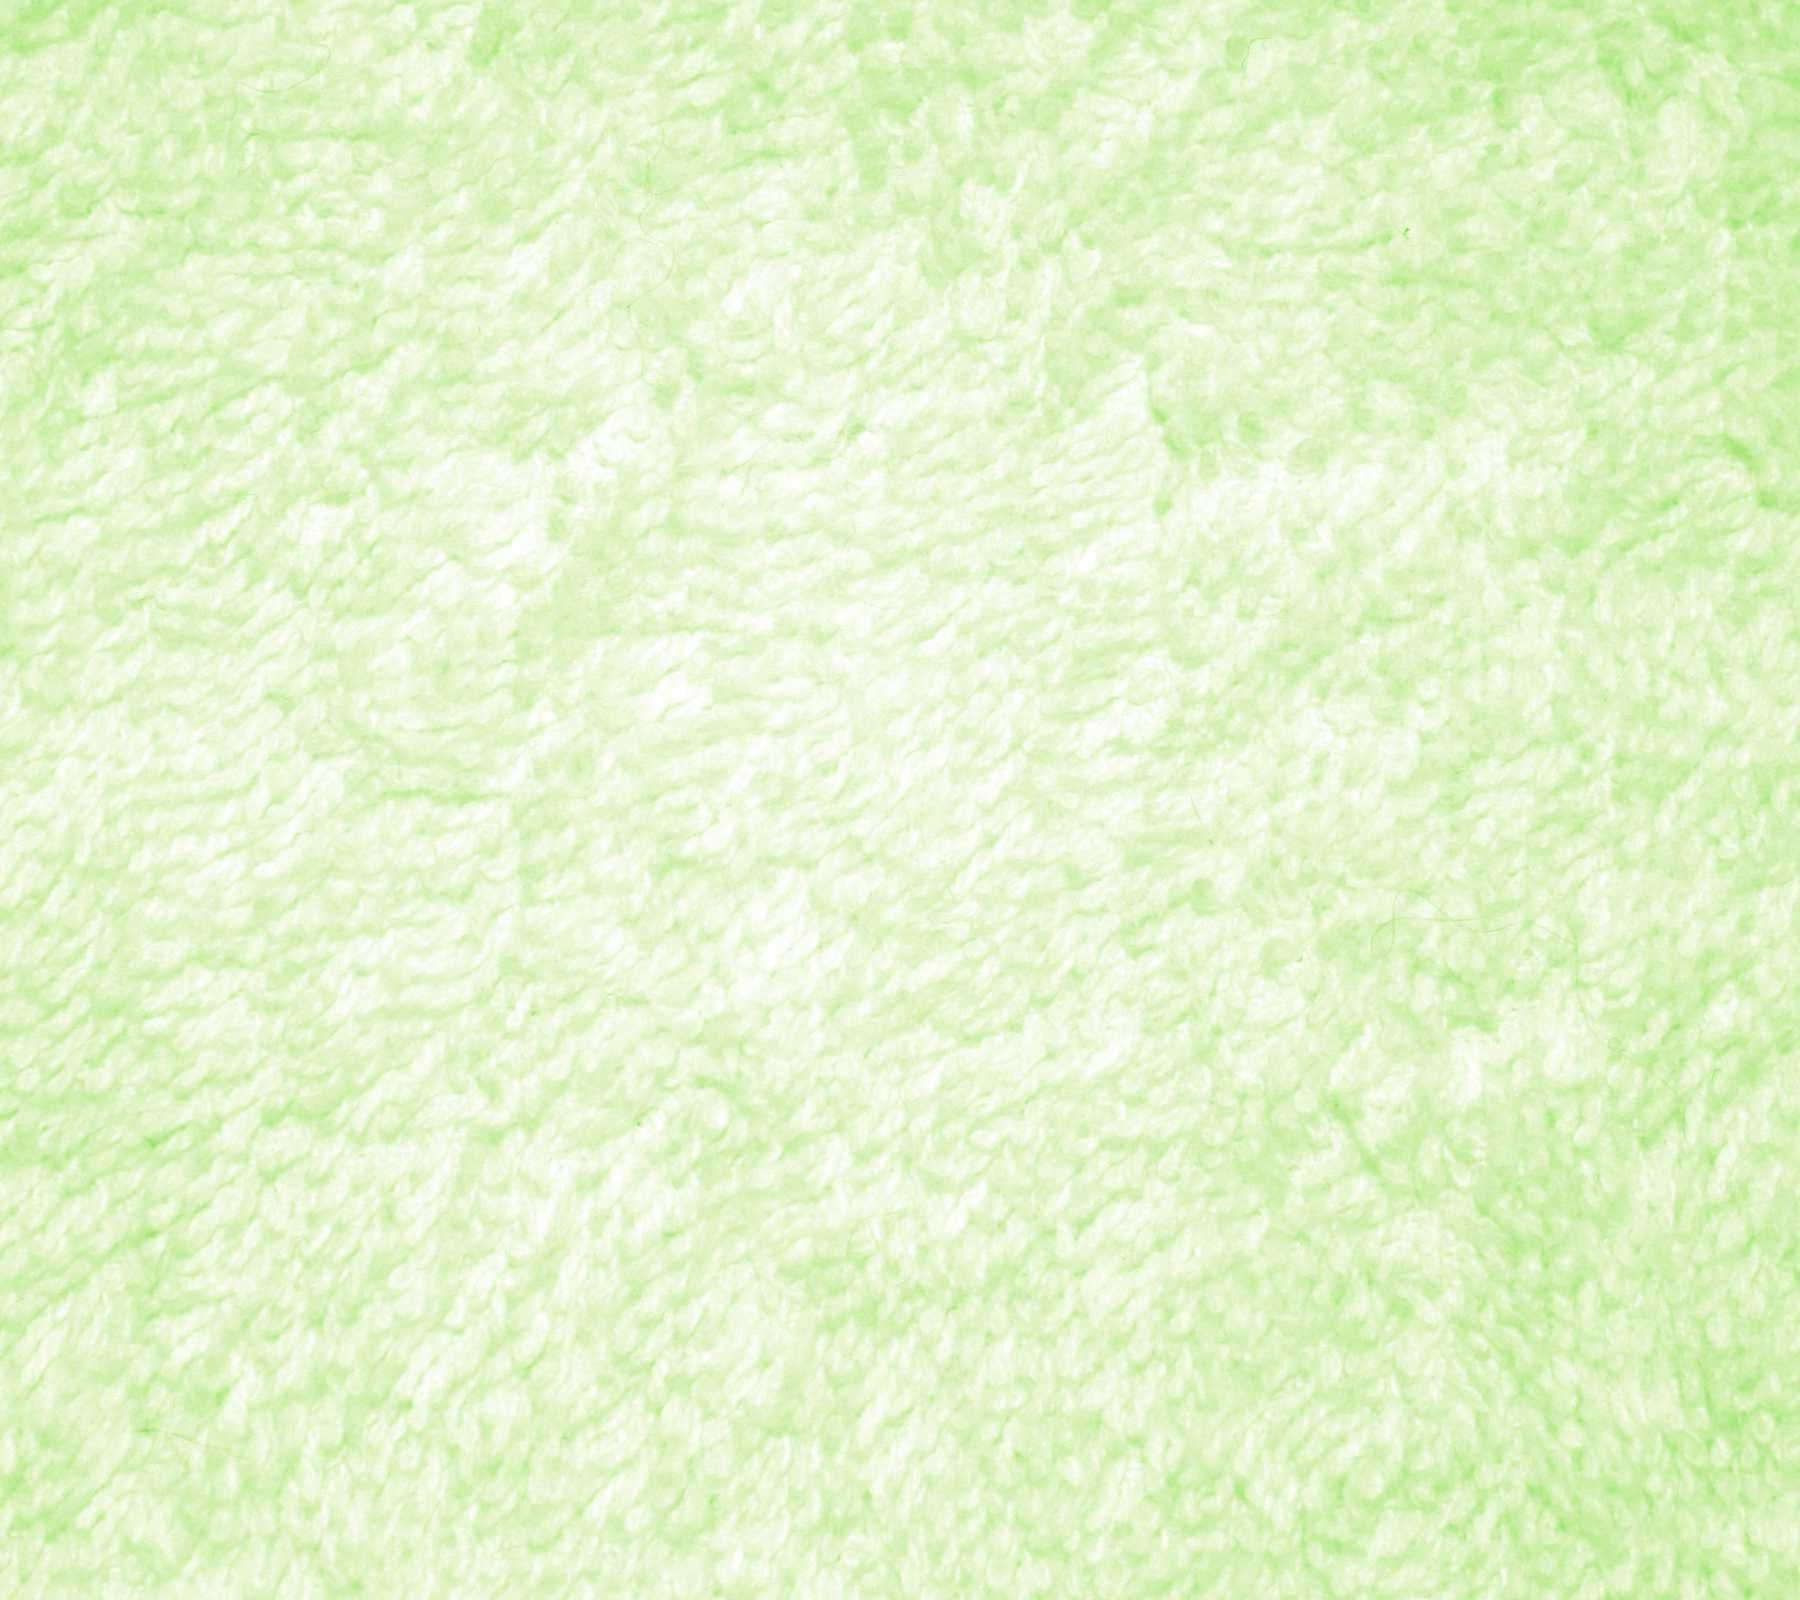 light green wallpaper photo wst textured vintage plain